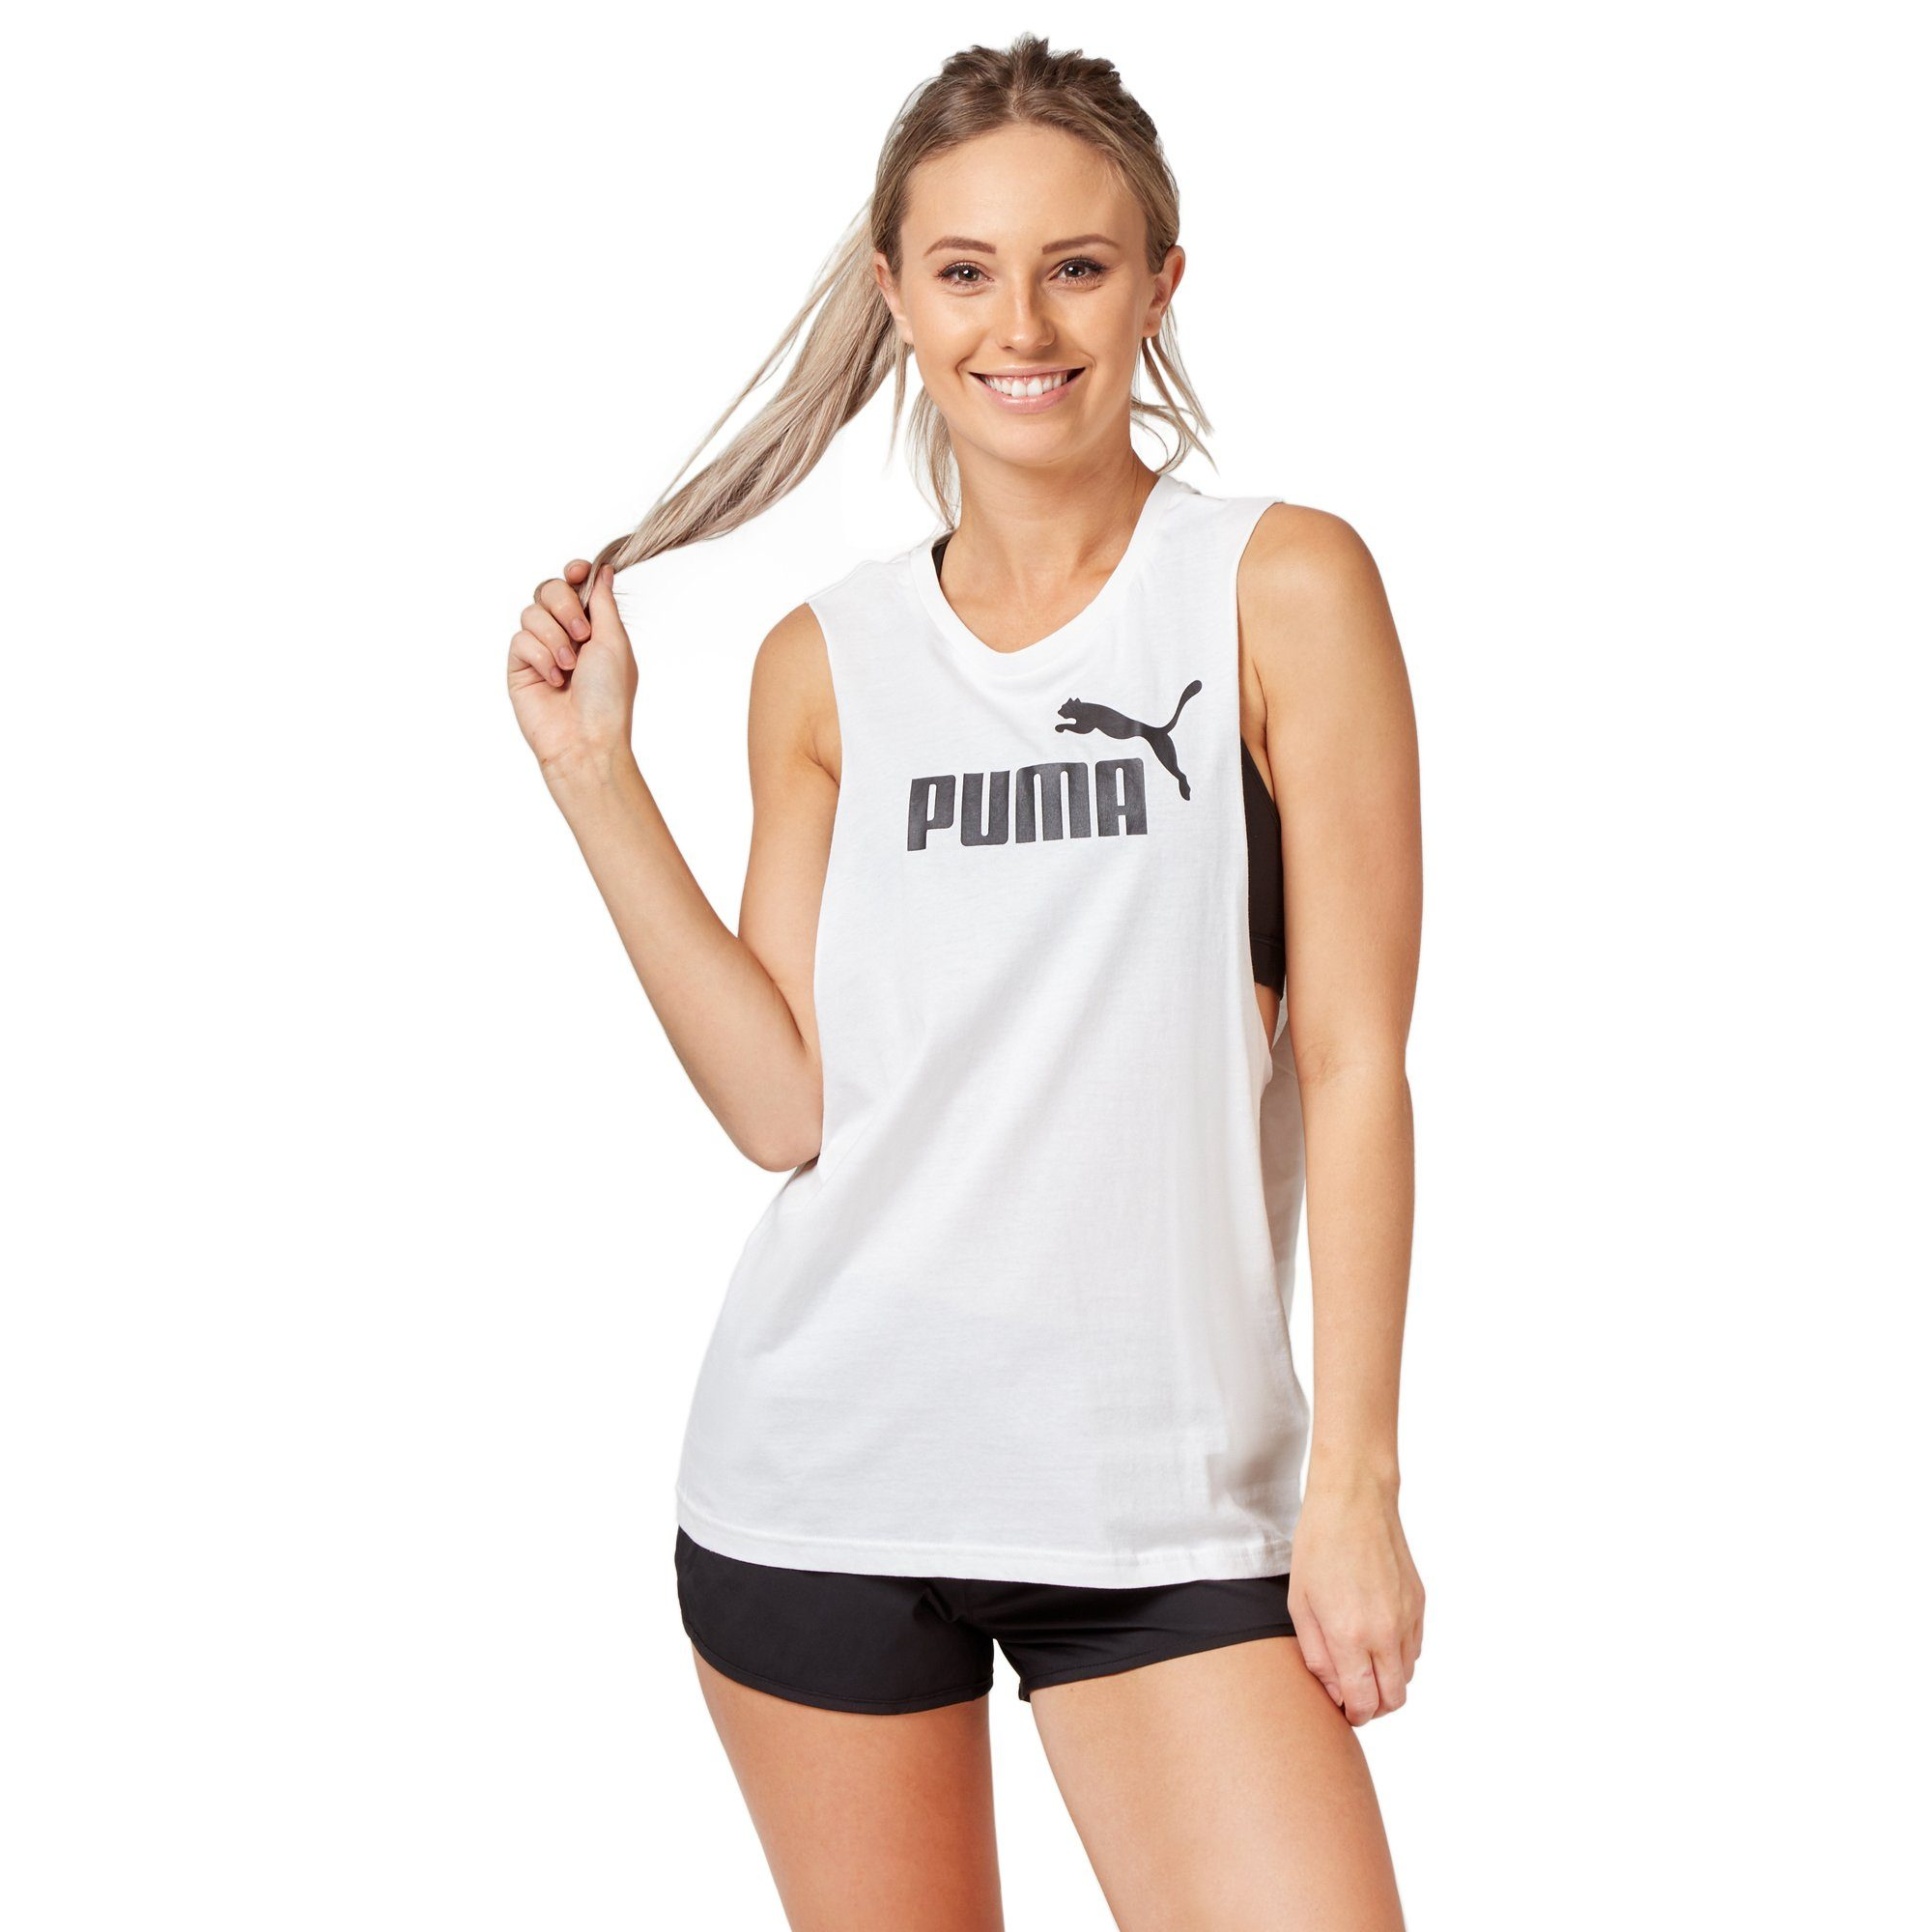 Puma Women's Cut Off Boyfriend Tank - White Apparel Puma